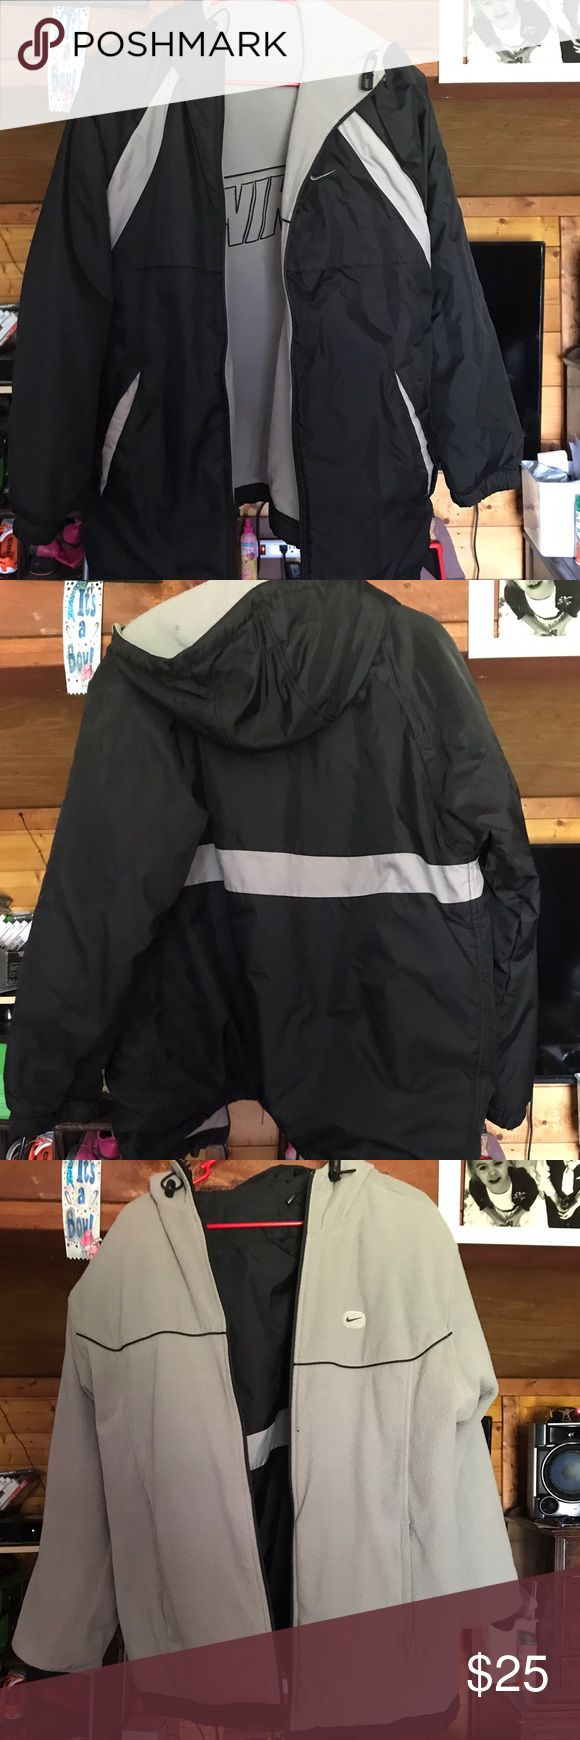 Nike Coat This is a men's size small (fits like a large in women's) black and gray Nike coat. It's very warm and in great shape. Nike Jackets & Coats